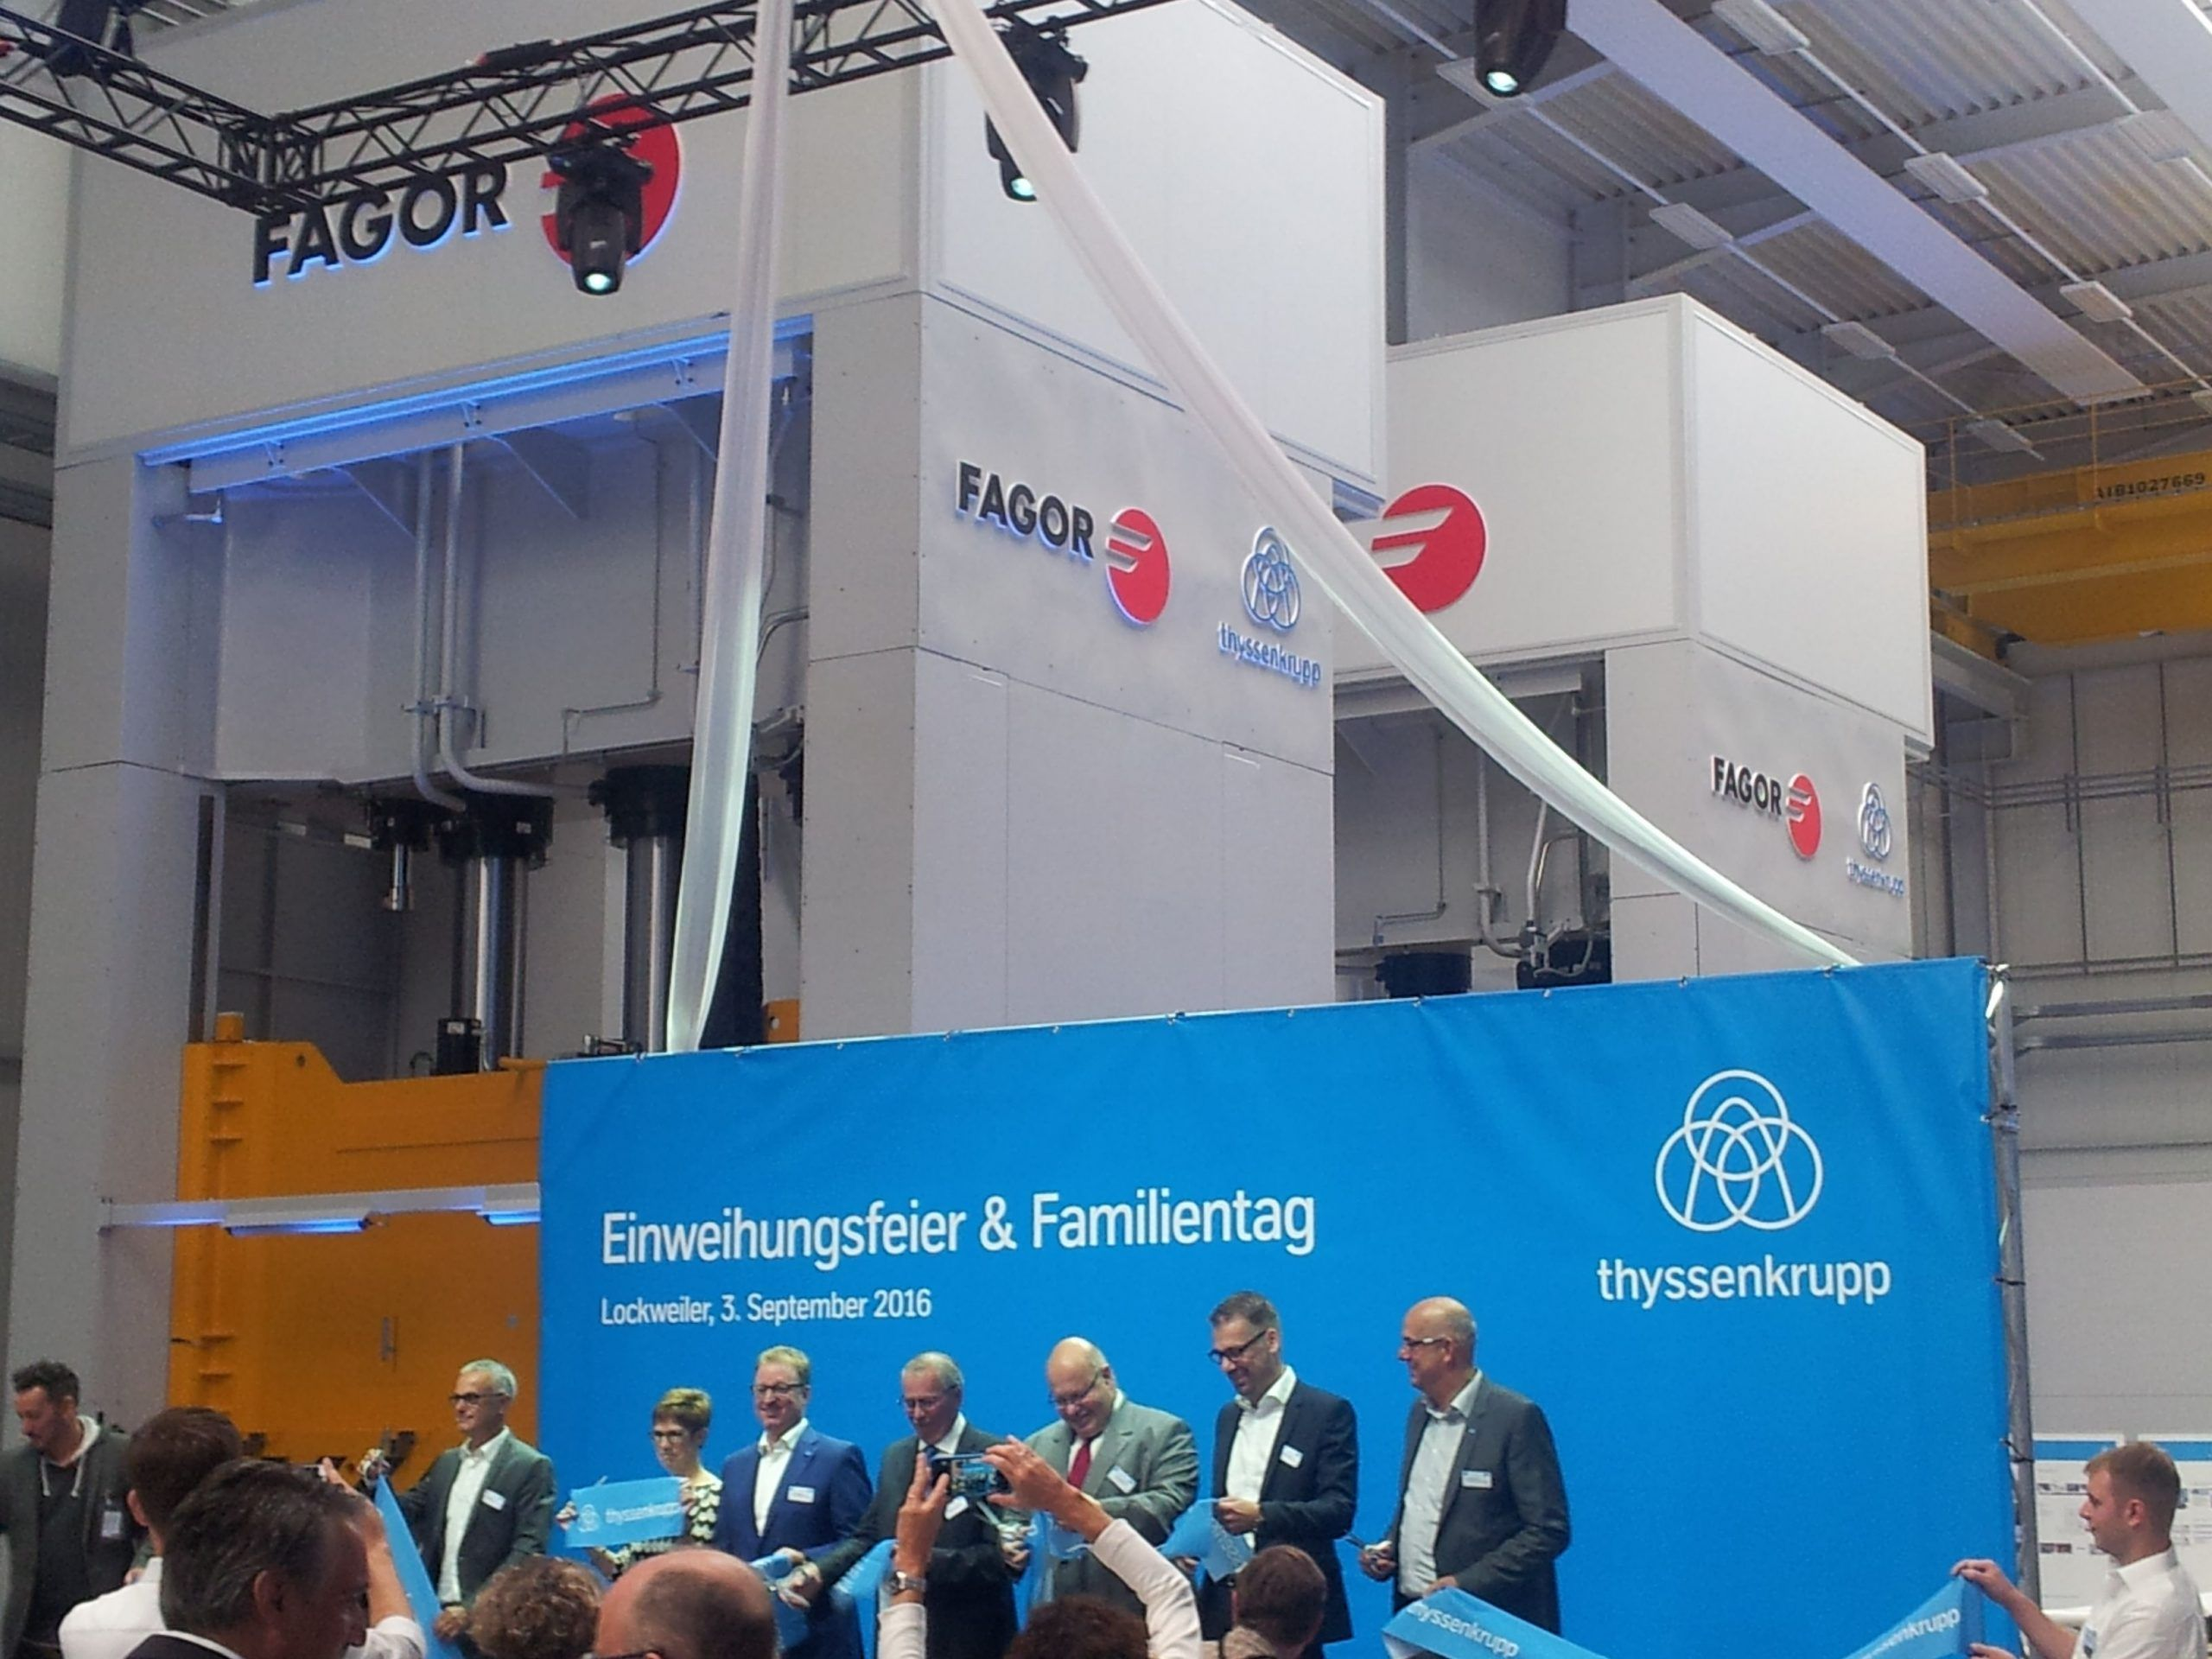 Fagor Arrasate event: ThyssenKrupp System Engineering congratulates FAGOR ARRASATE at the inauguration of their new plant